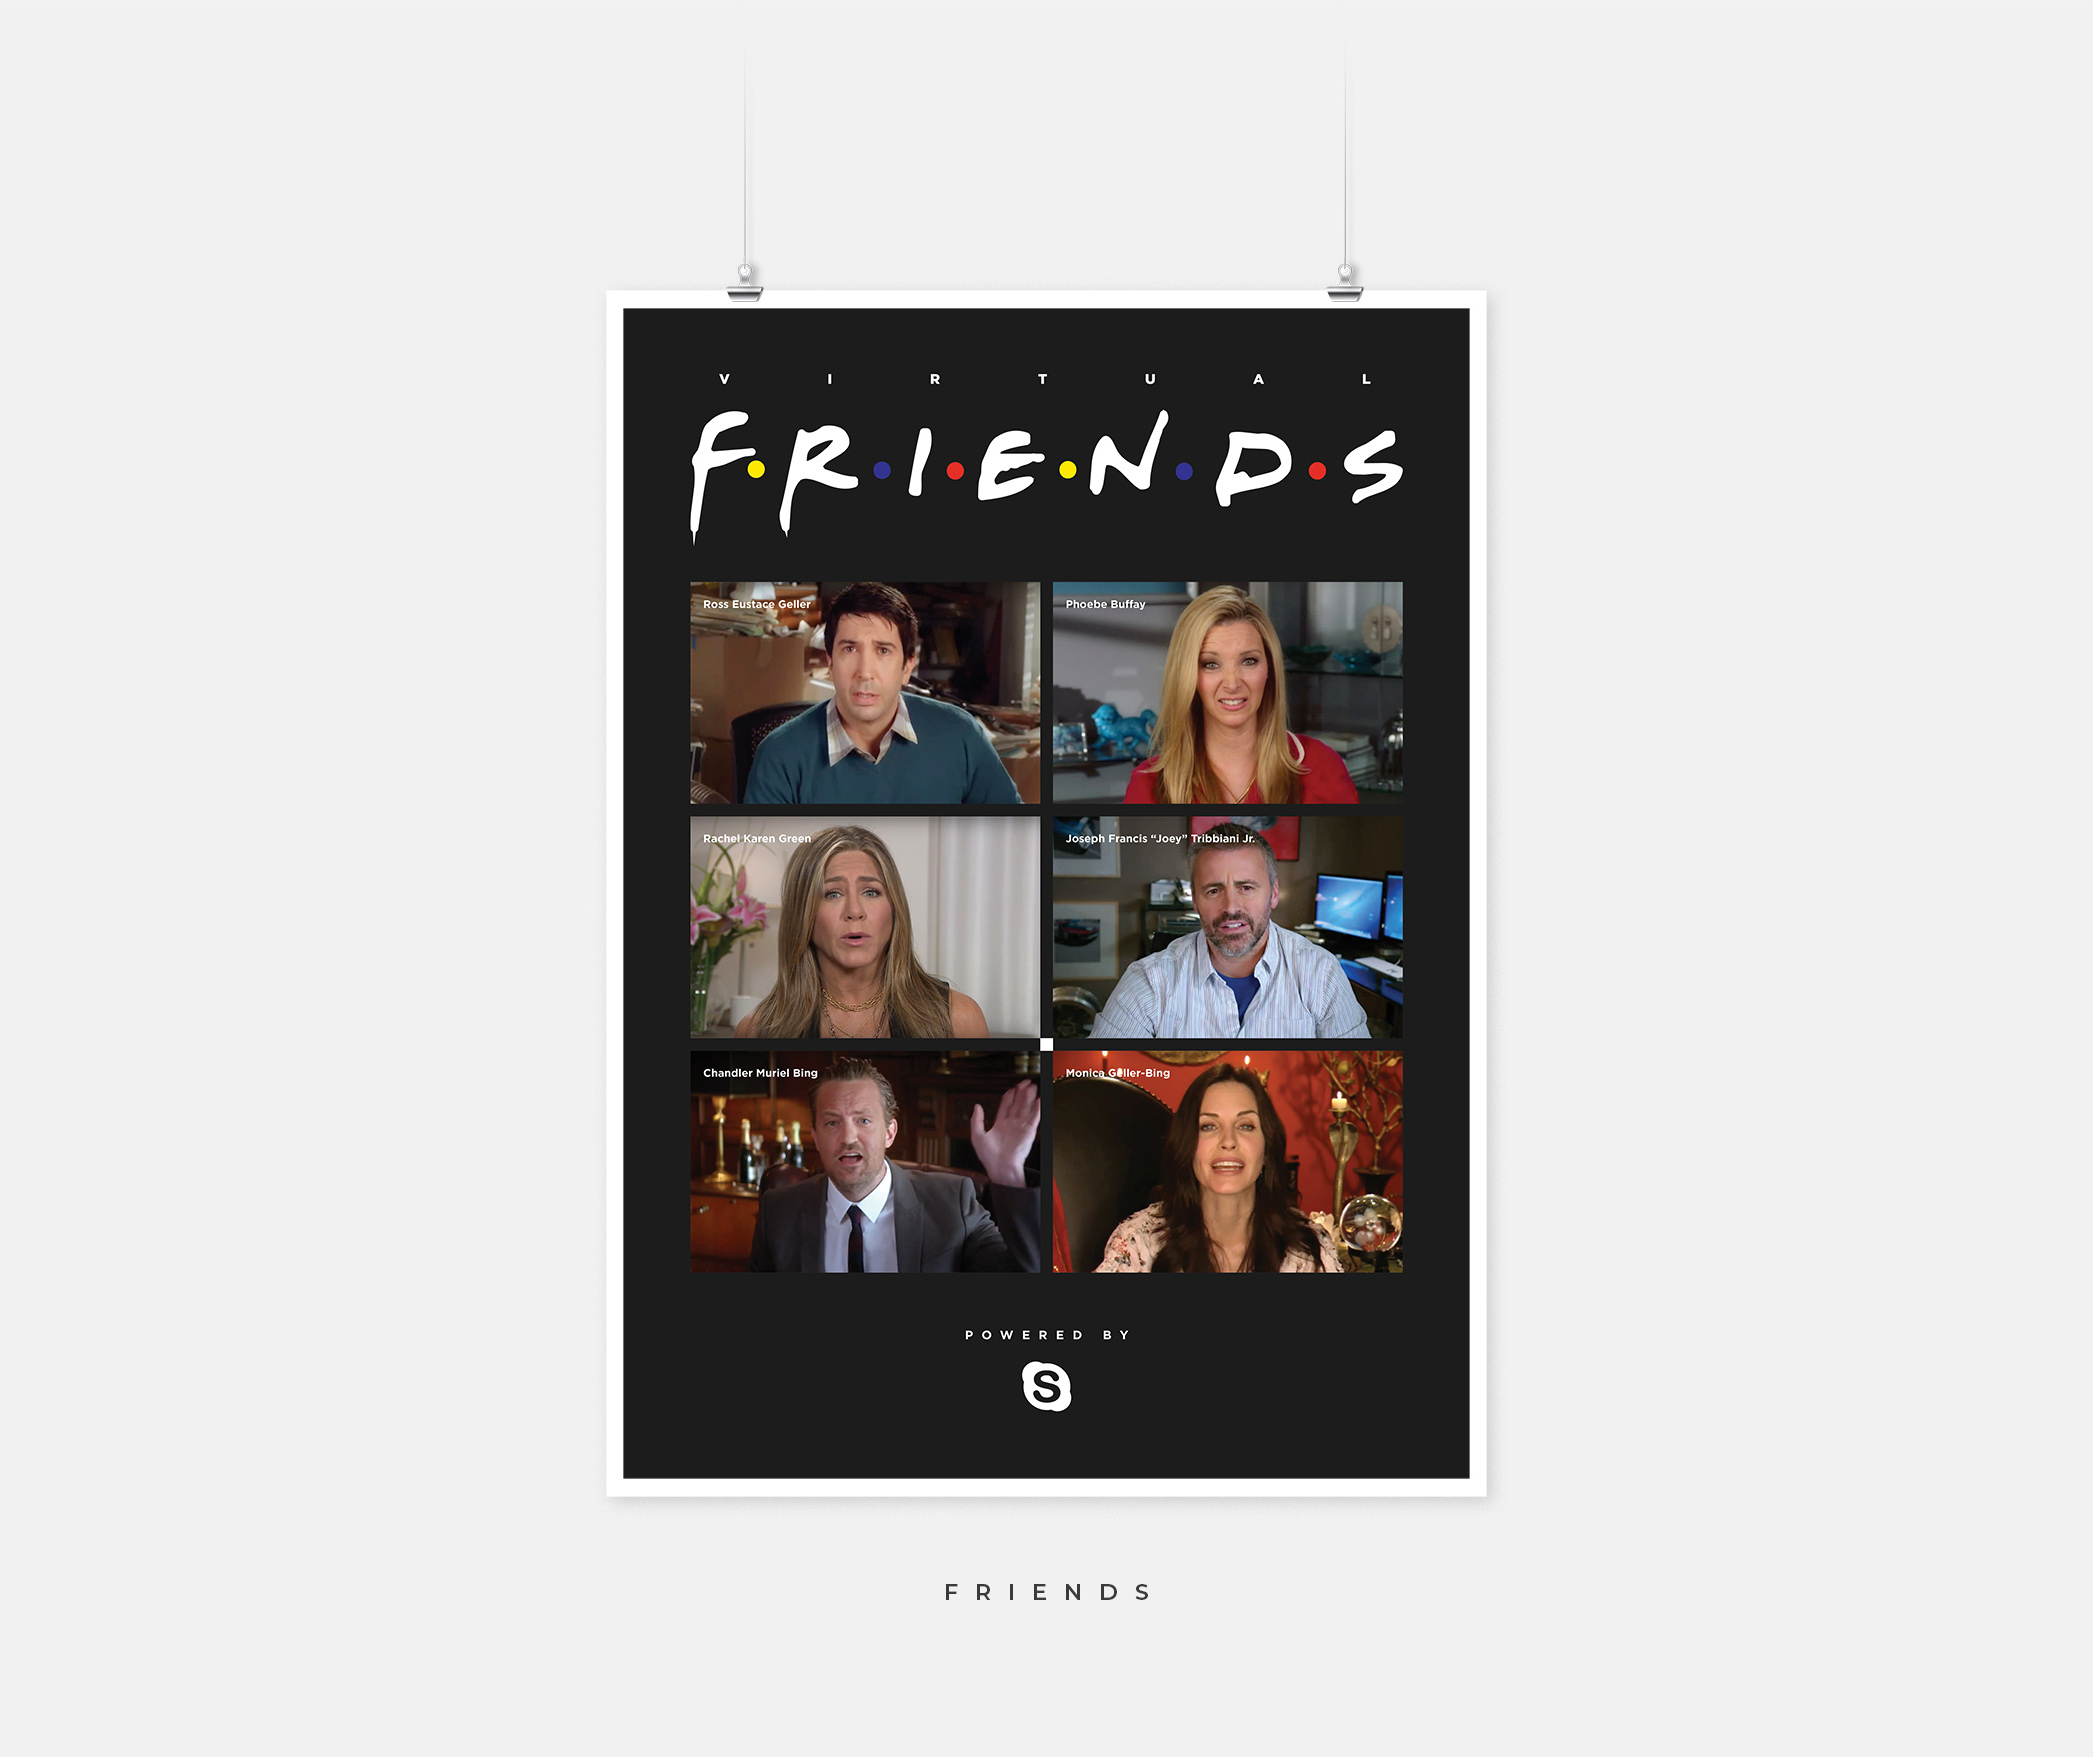 A Friends poster with an image of the cast of Friends speaking with one another on a Zoom call.